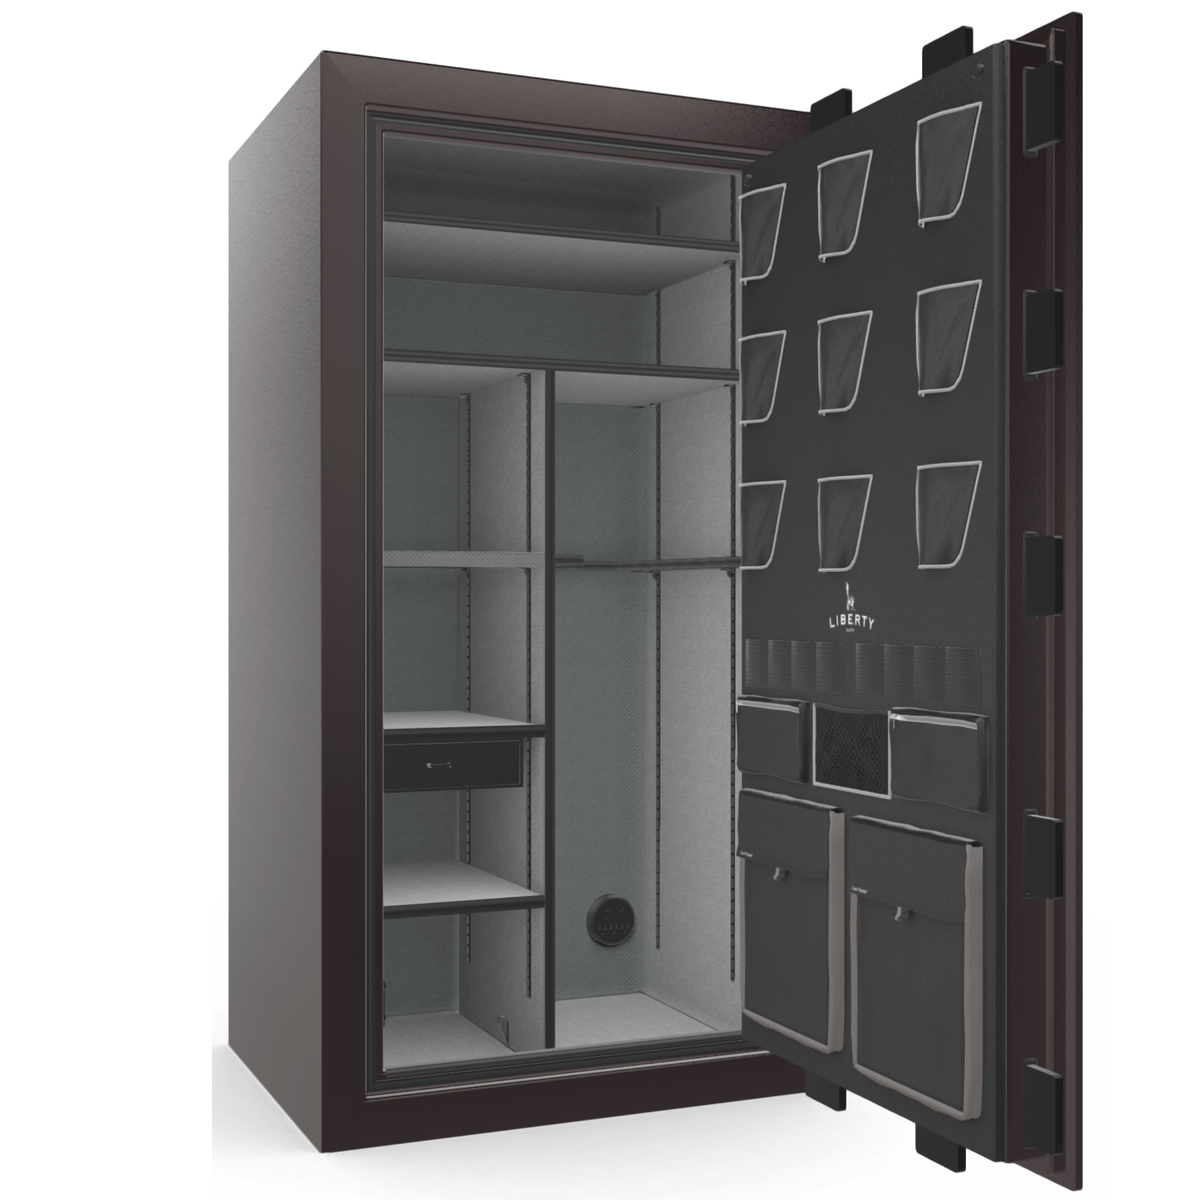 "Classic Plus | 40 | Level 7 Security | 110 Minute Fire Protection | Black Cherry Gloss | Black Electronic Lock | 65.5""(H) x 36""(W) x 32""(D)"